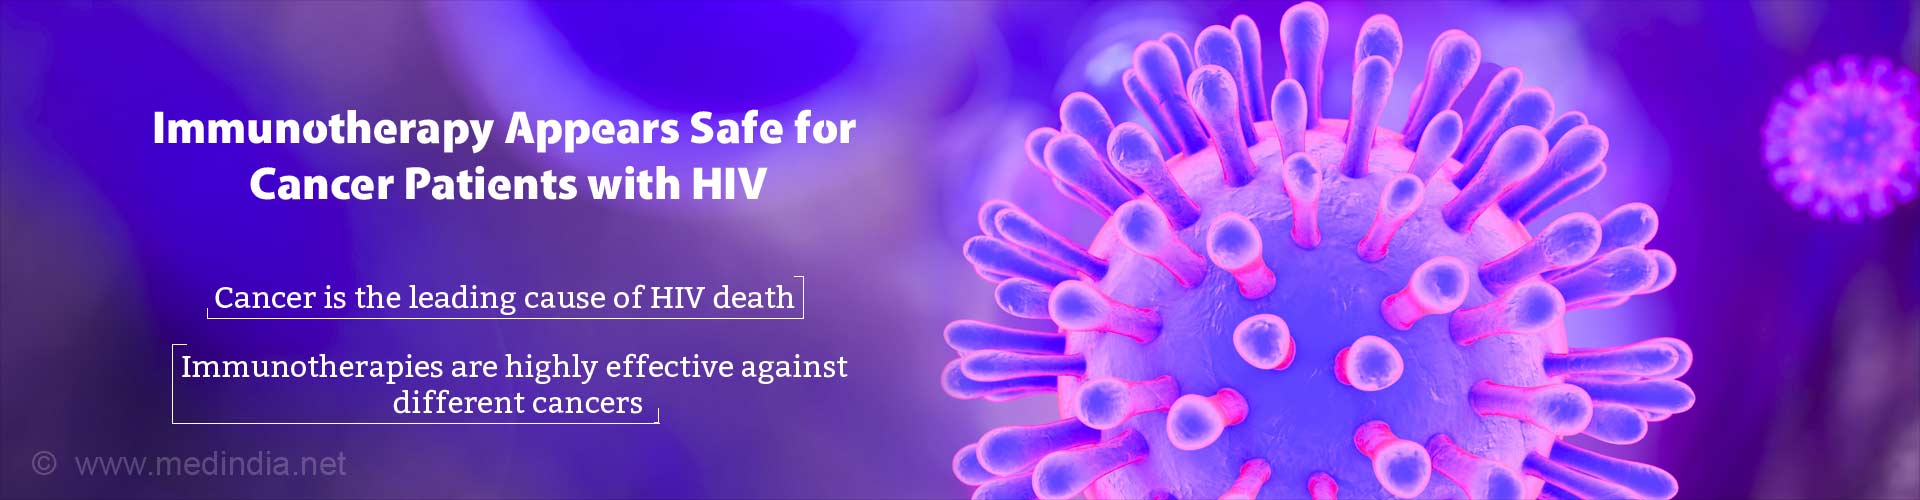 Immunotherapy Appears Safe for Cancer Patients With HIV